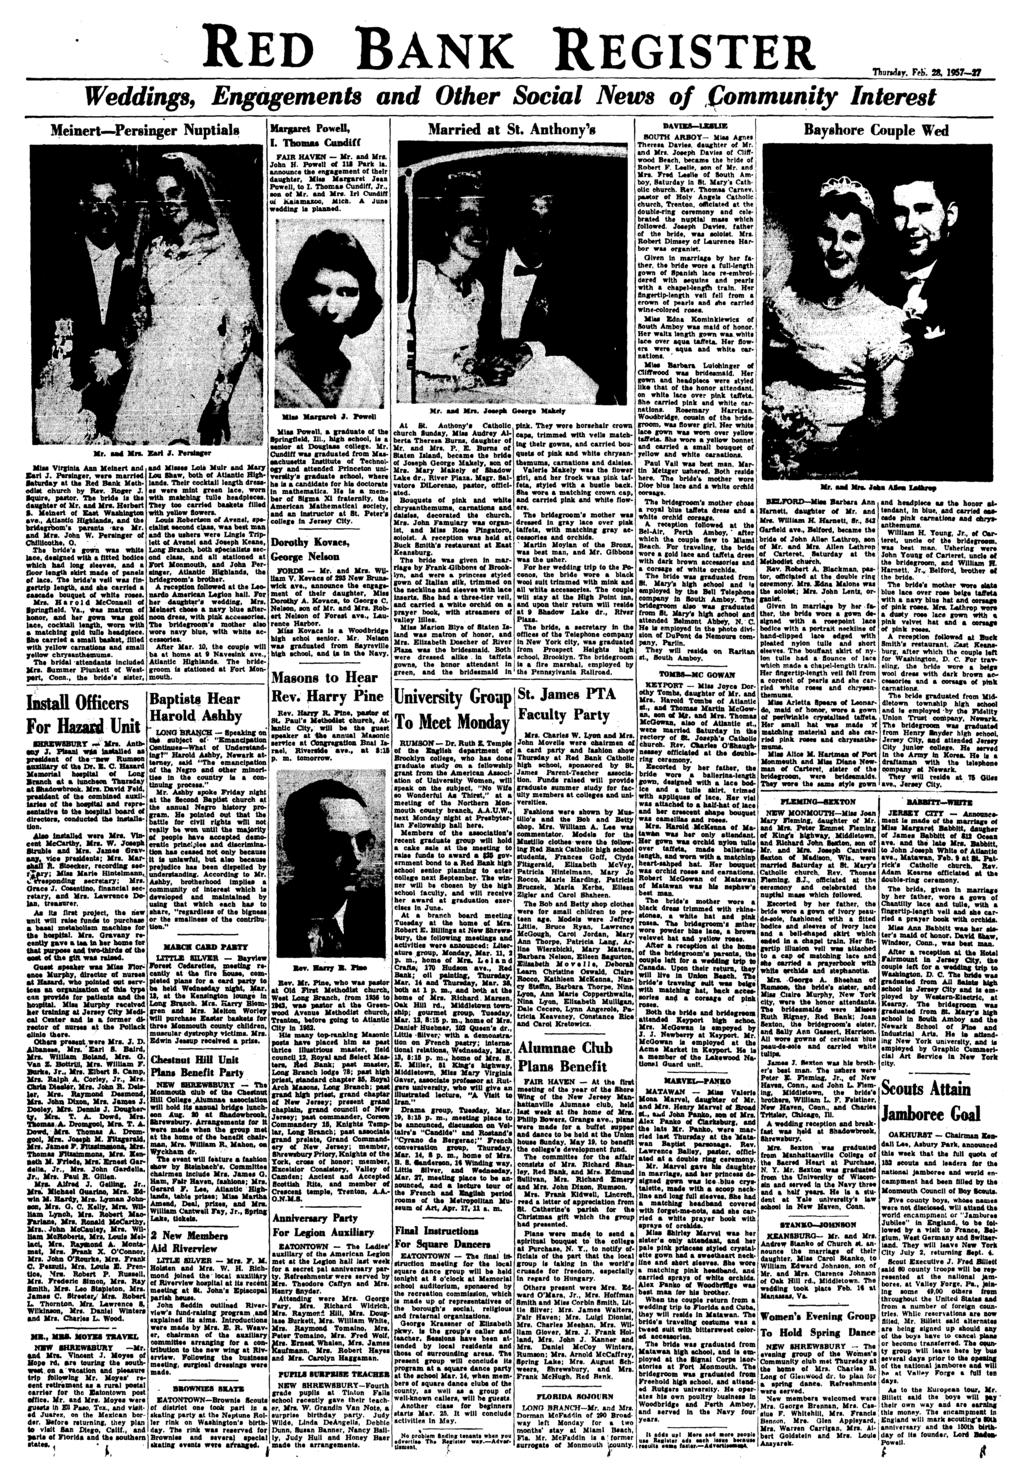 RED BANK REGISTER Thursday. Feb. 28, 1957-27 Weddings, Engagements and Other Social News of Community Interest Meinert Pereinger Nuptials MIH Virginia Ann Melnert and Karl J.